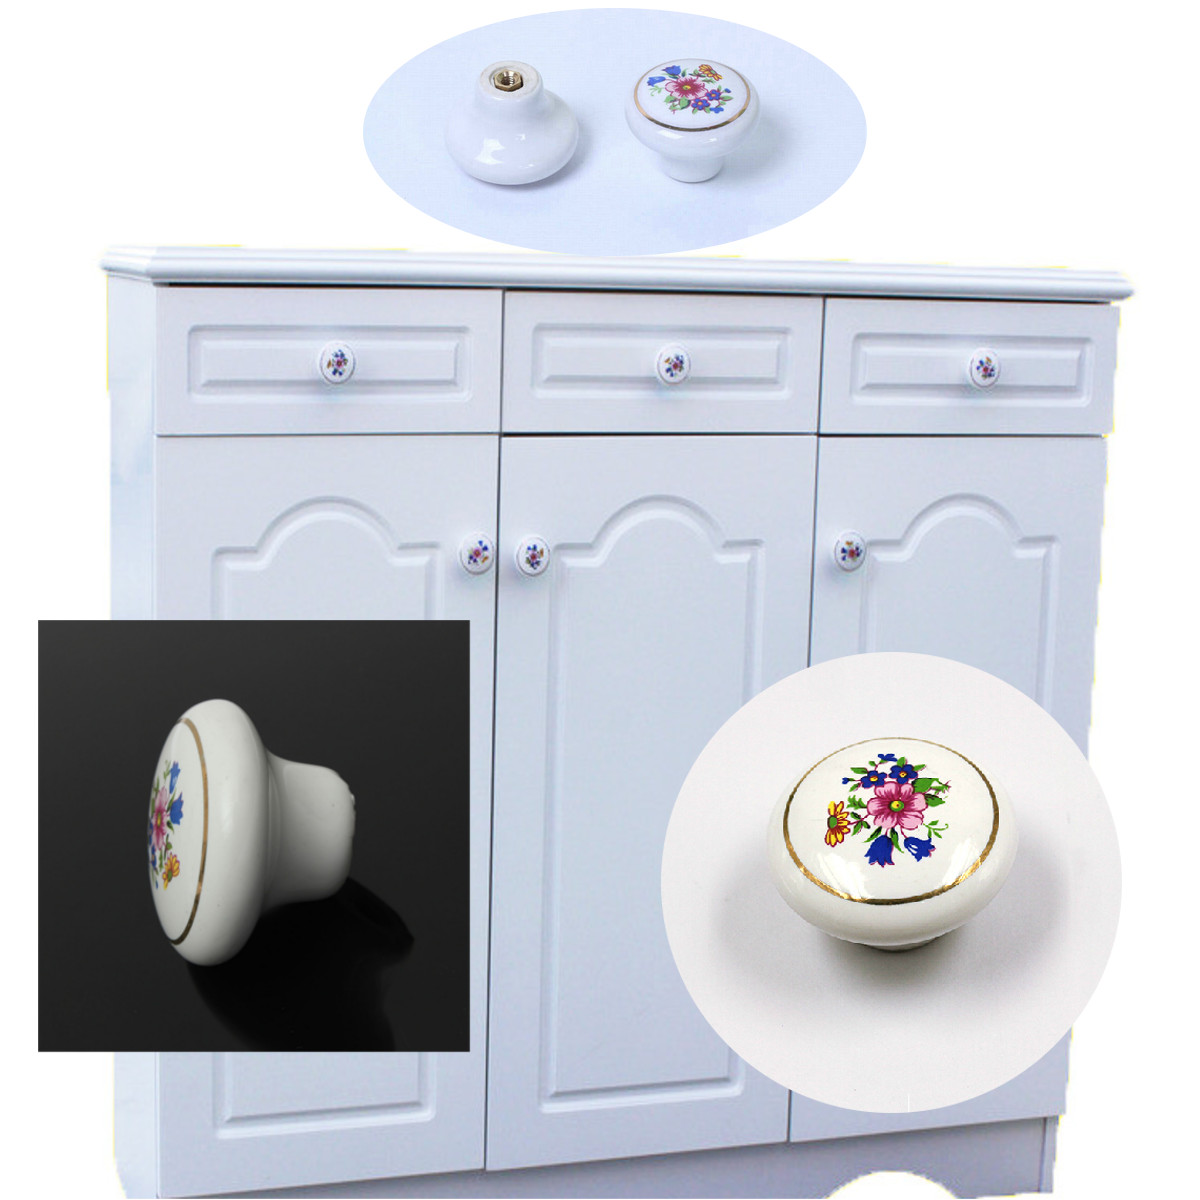 poigne de porte meuble best wmicrofr x poigne boutons de porte meuble with poigne de porte. Black Bedroom Furniture Sets. Home Design Ideas